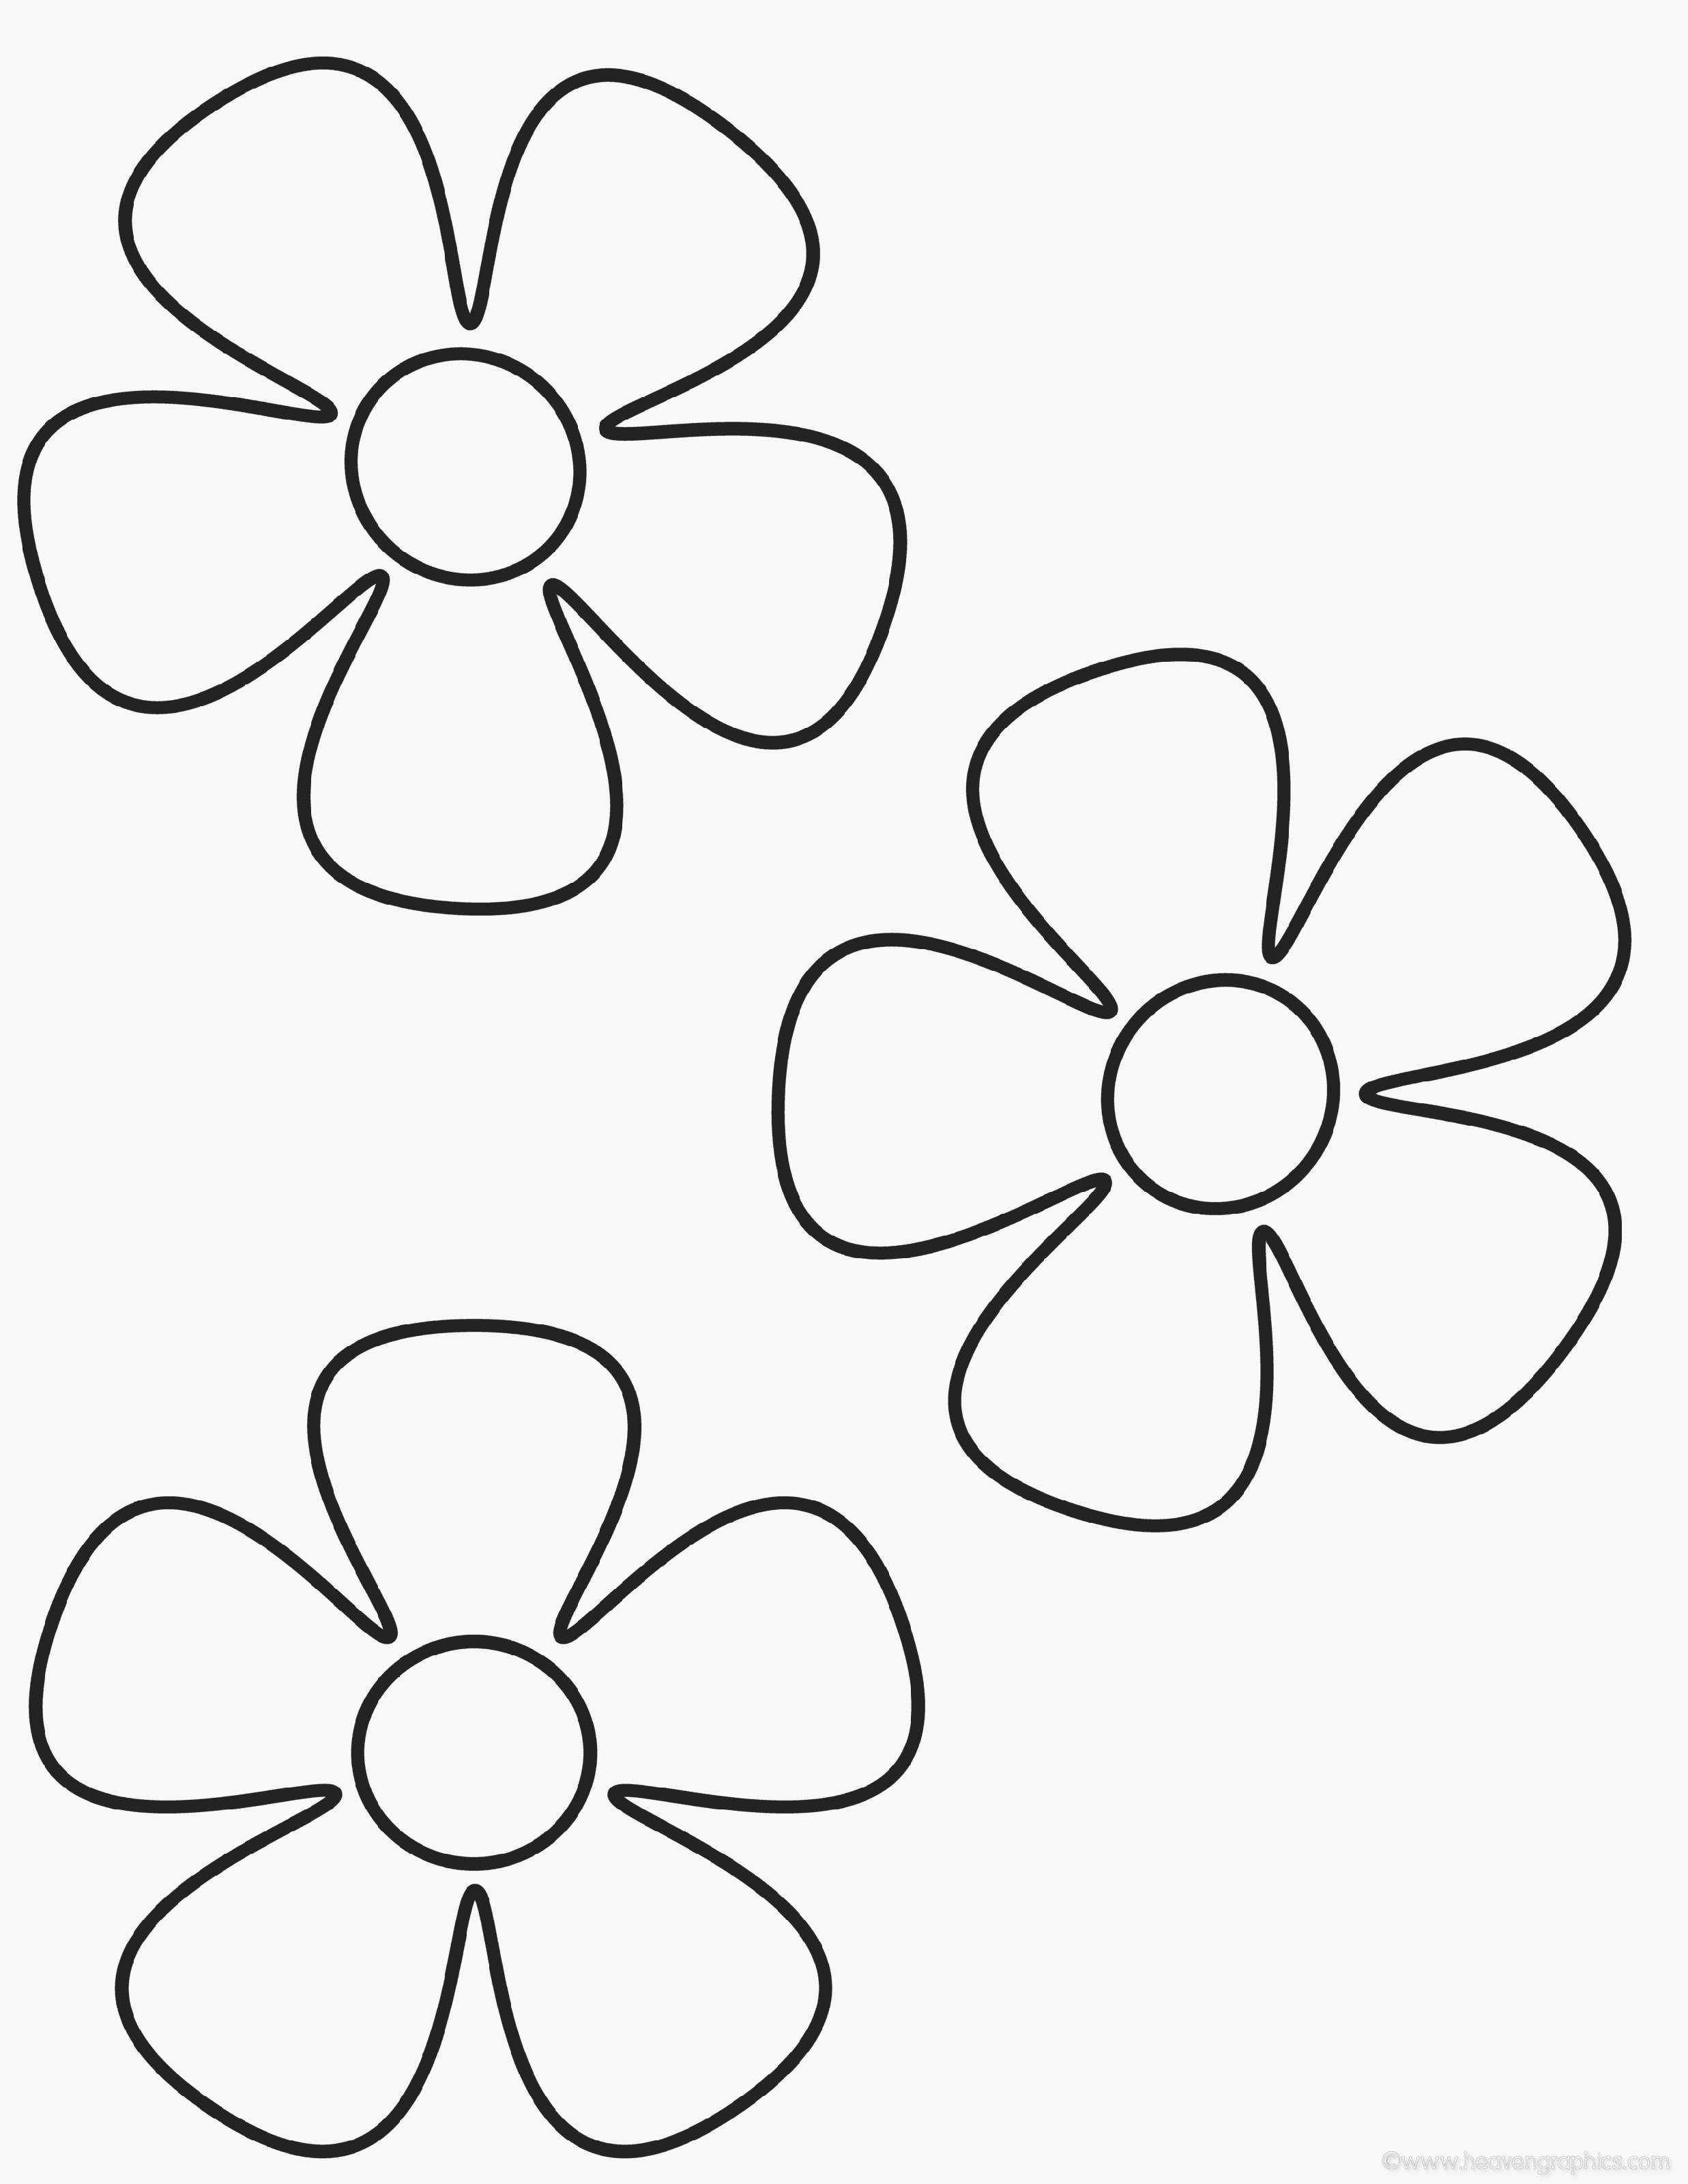 Daisy Flower Coloring Page Free Printable Sea4Waterman